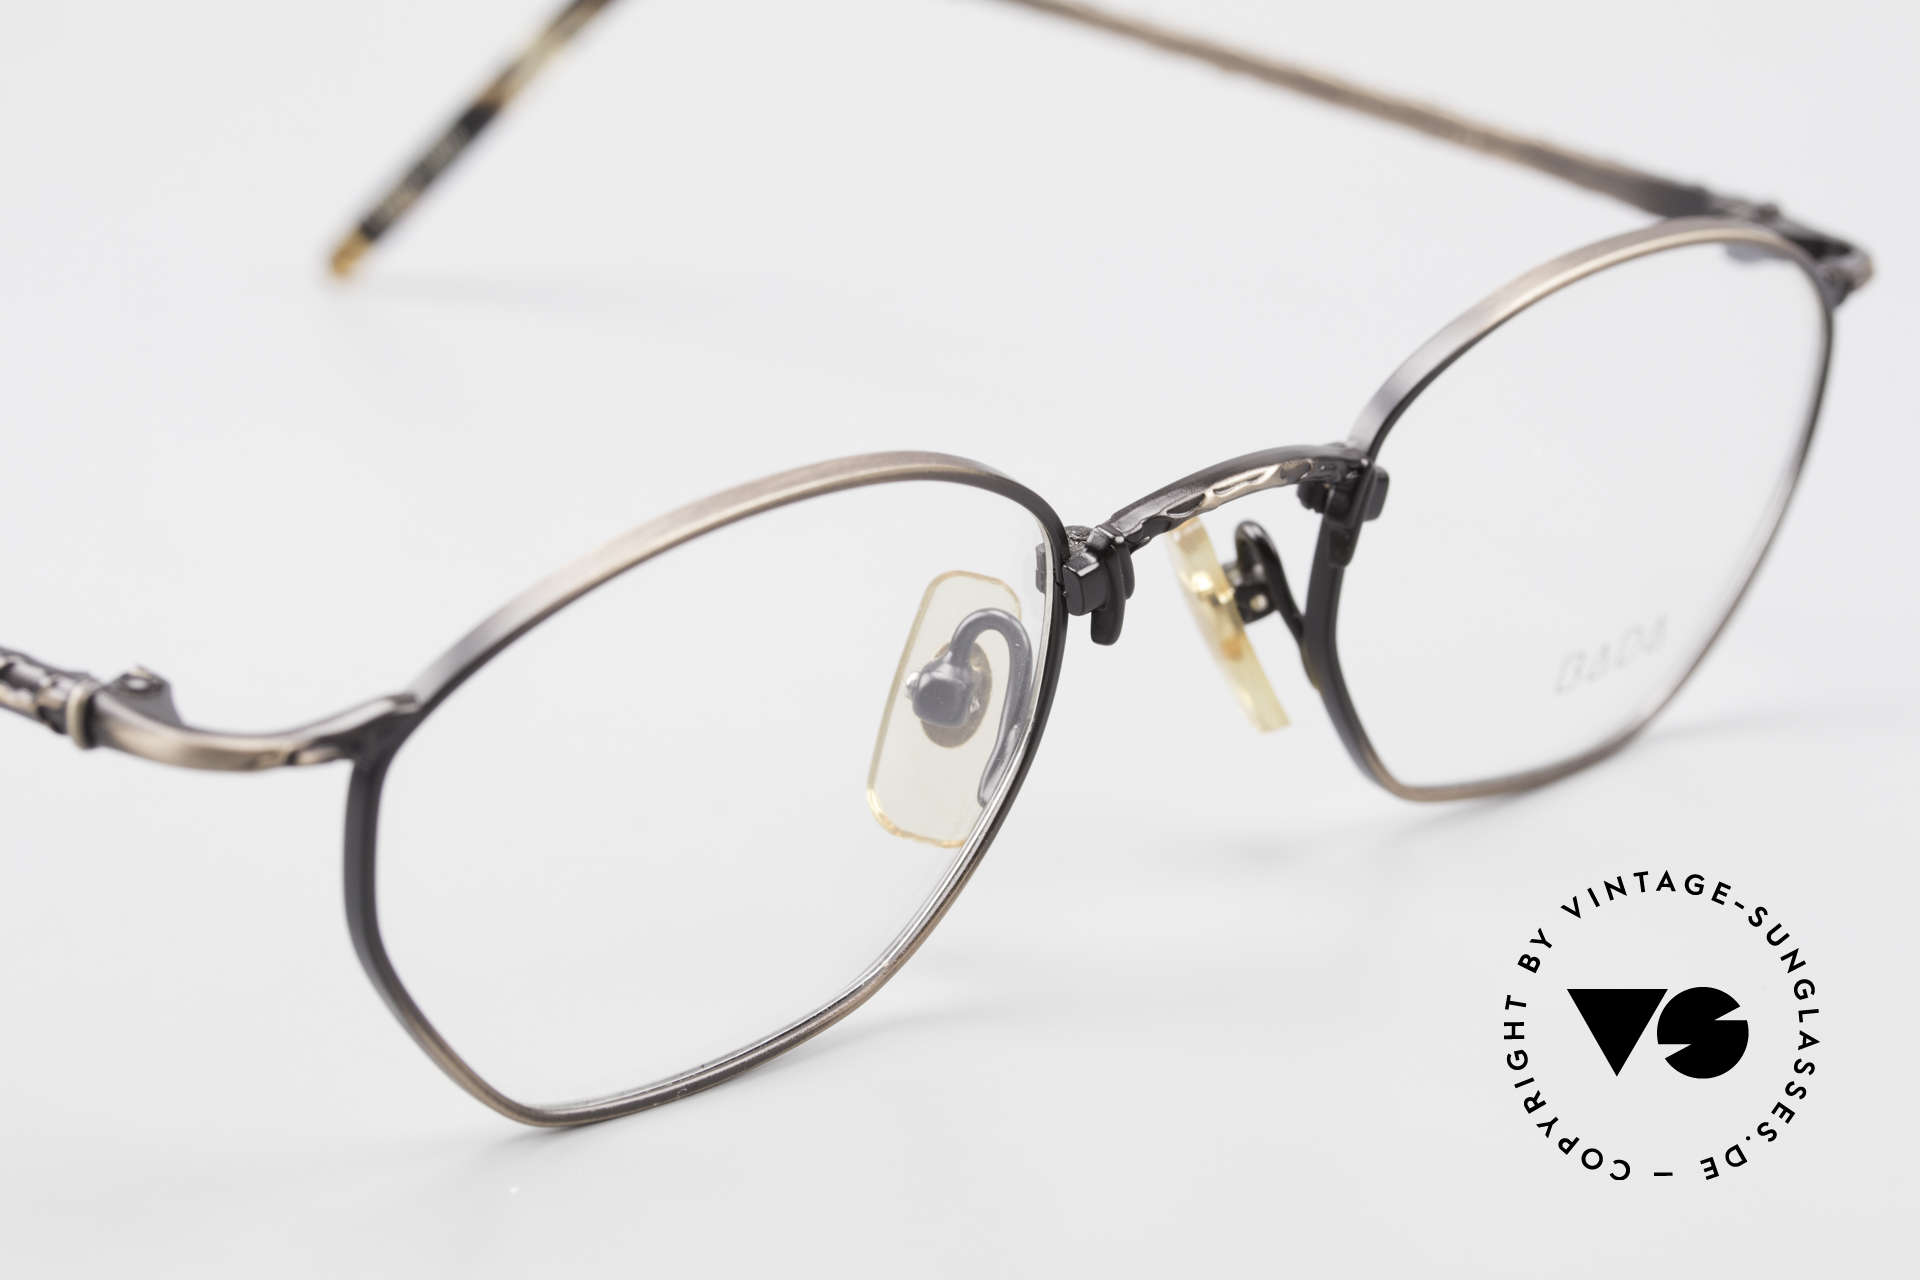 Bada BL1353 Oliver Peoples Eyevan Style, NO RETRO fashion-specs, but a unique old ORIGINAL, Made for Men and Women